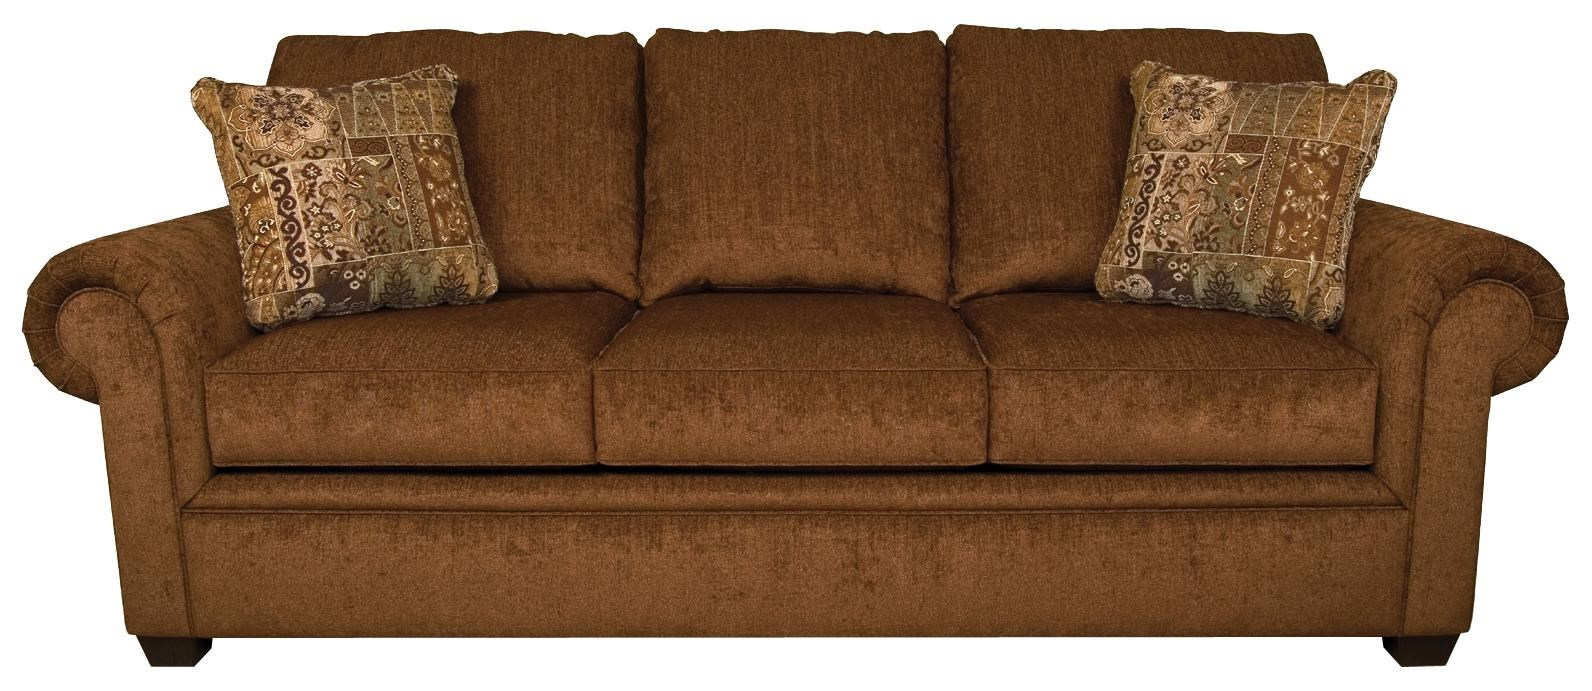 Sofa S Brett Rolled Arm Sofa With Exposed Block Legs By England At Coconis Furniture Mattress 1st